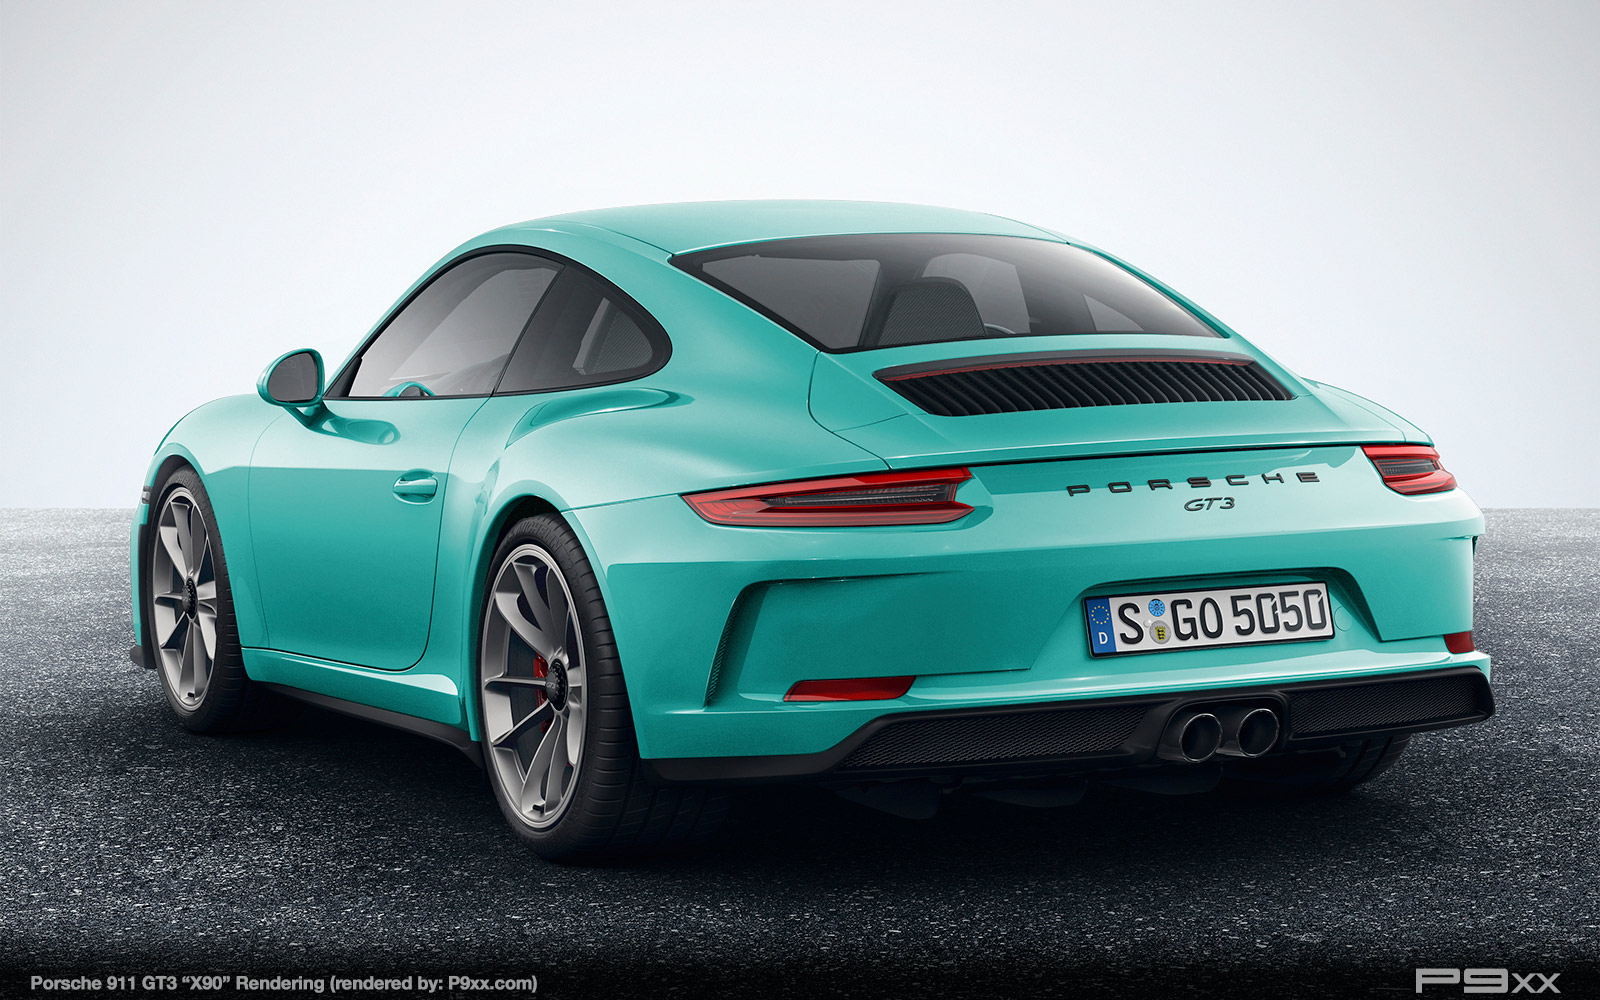 Porsche 911 gt3 rs review 2017 autocar - For Our X90 Rendering We Replaced The Larger Gt3 Whale Tail Deck Lid Spoiler For The More Subtle Pop Up Variant From The 911 Carrera Gts